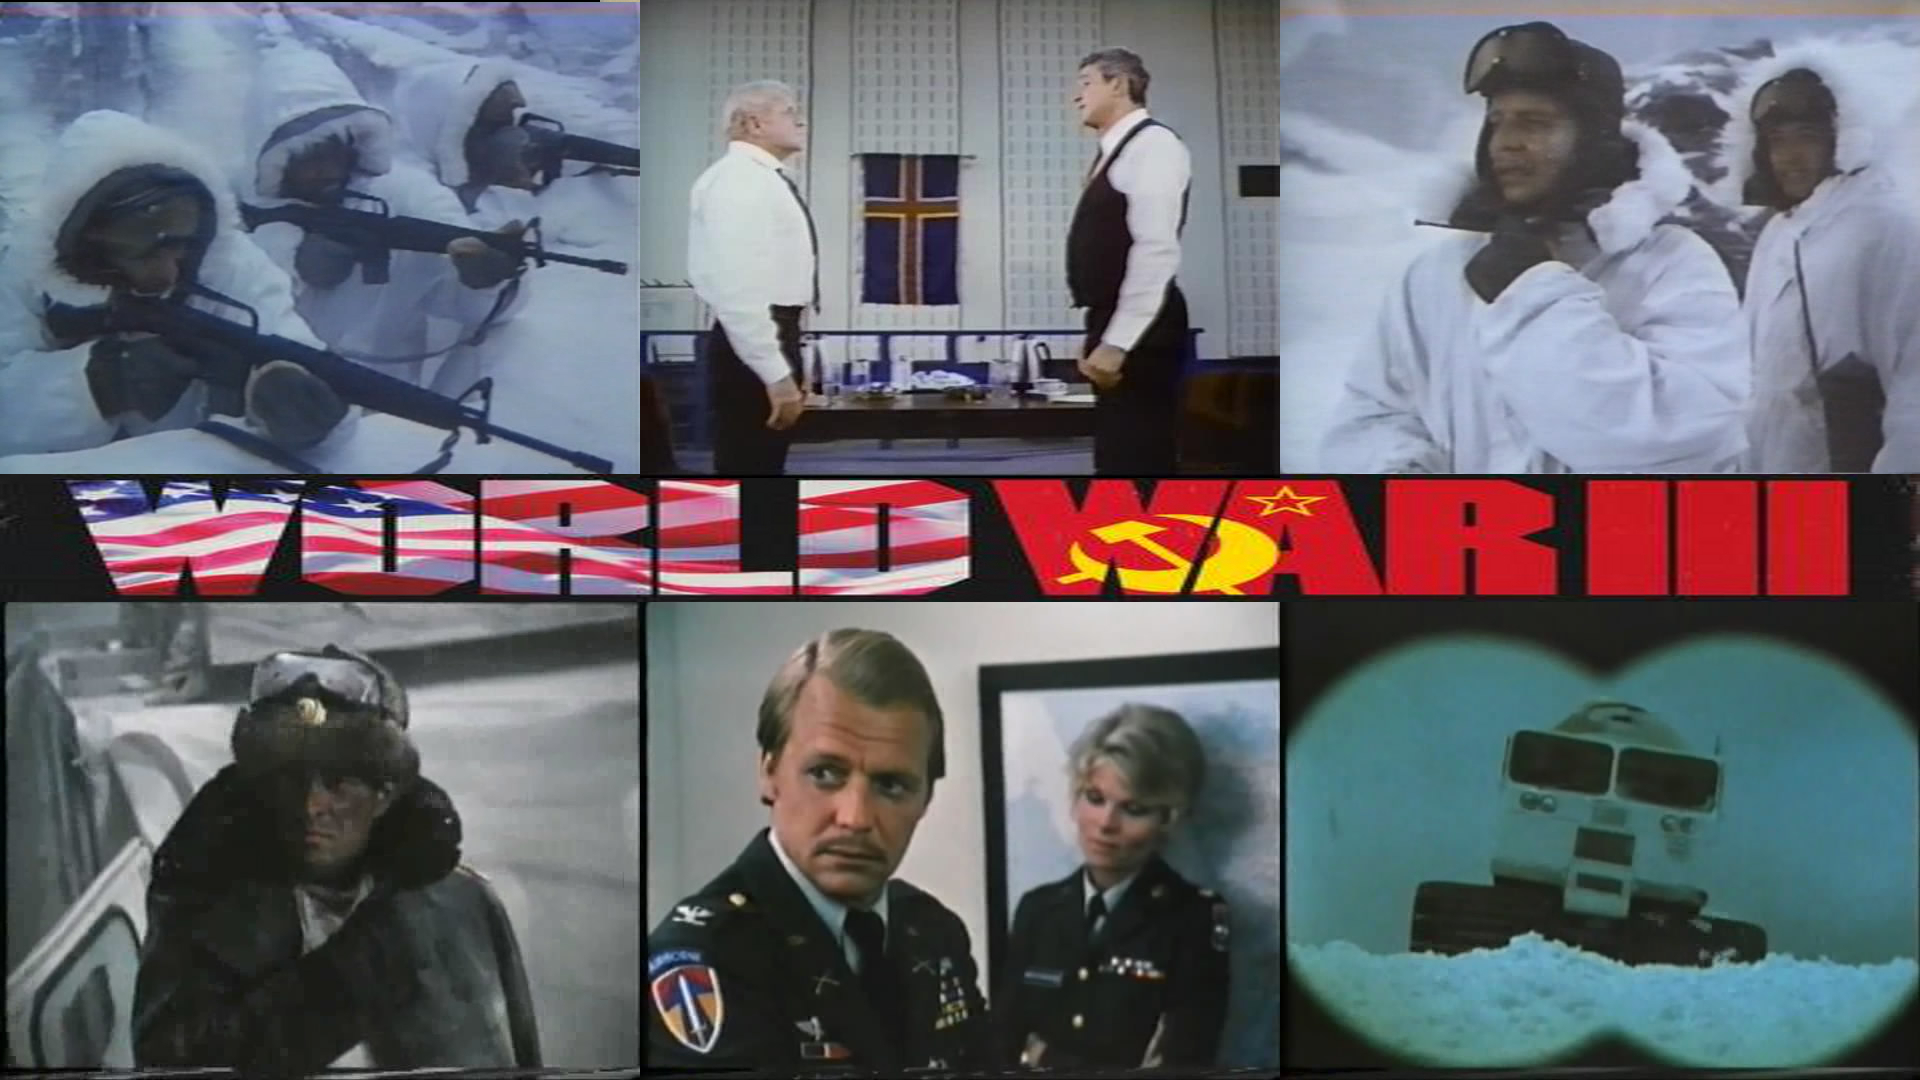 possibility of world war iii World war iii in popular culture world war iii is a common theme in nevertheless, the possibility of such a war became the basis for speculative fiction.